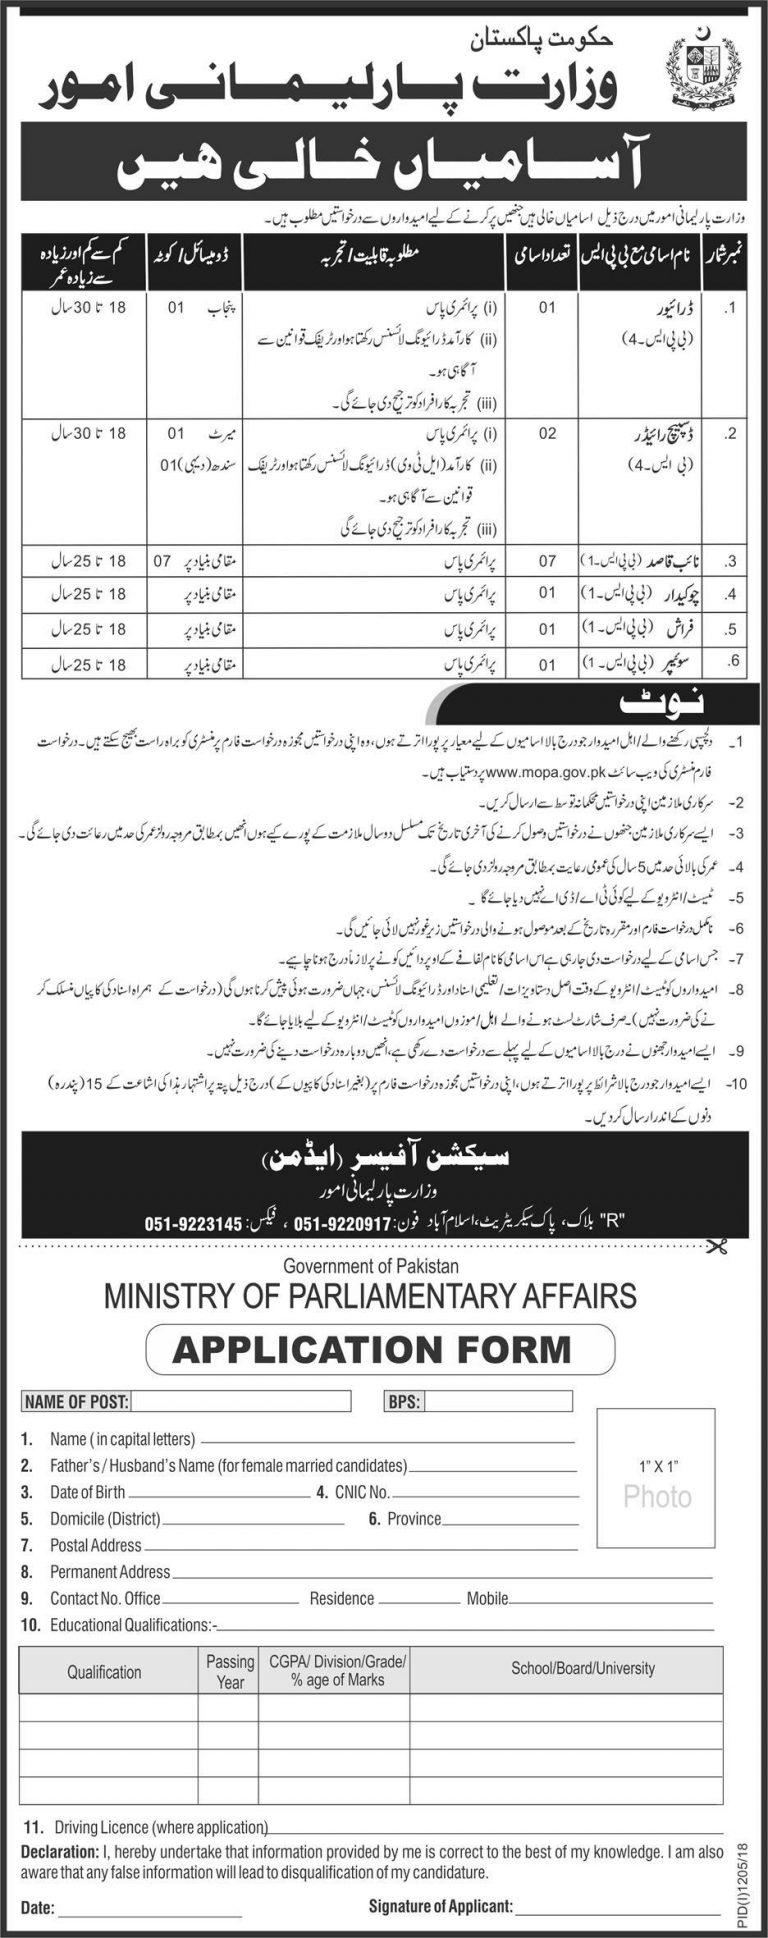 Ministry of Parliamentary Affairs Islamabad Jobs 2018 Application From Available Latest   www.mopa.gov.pk